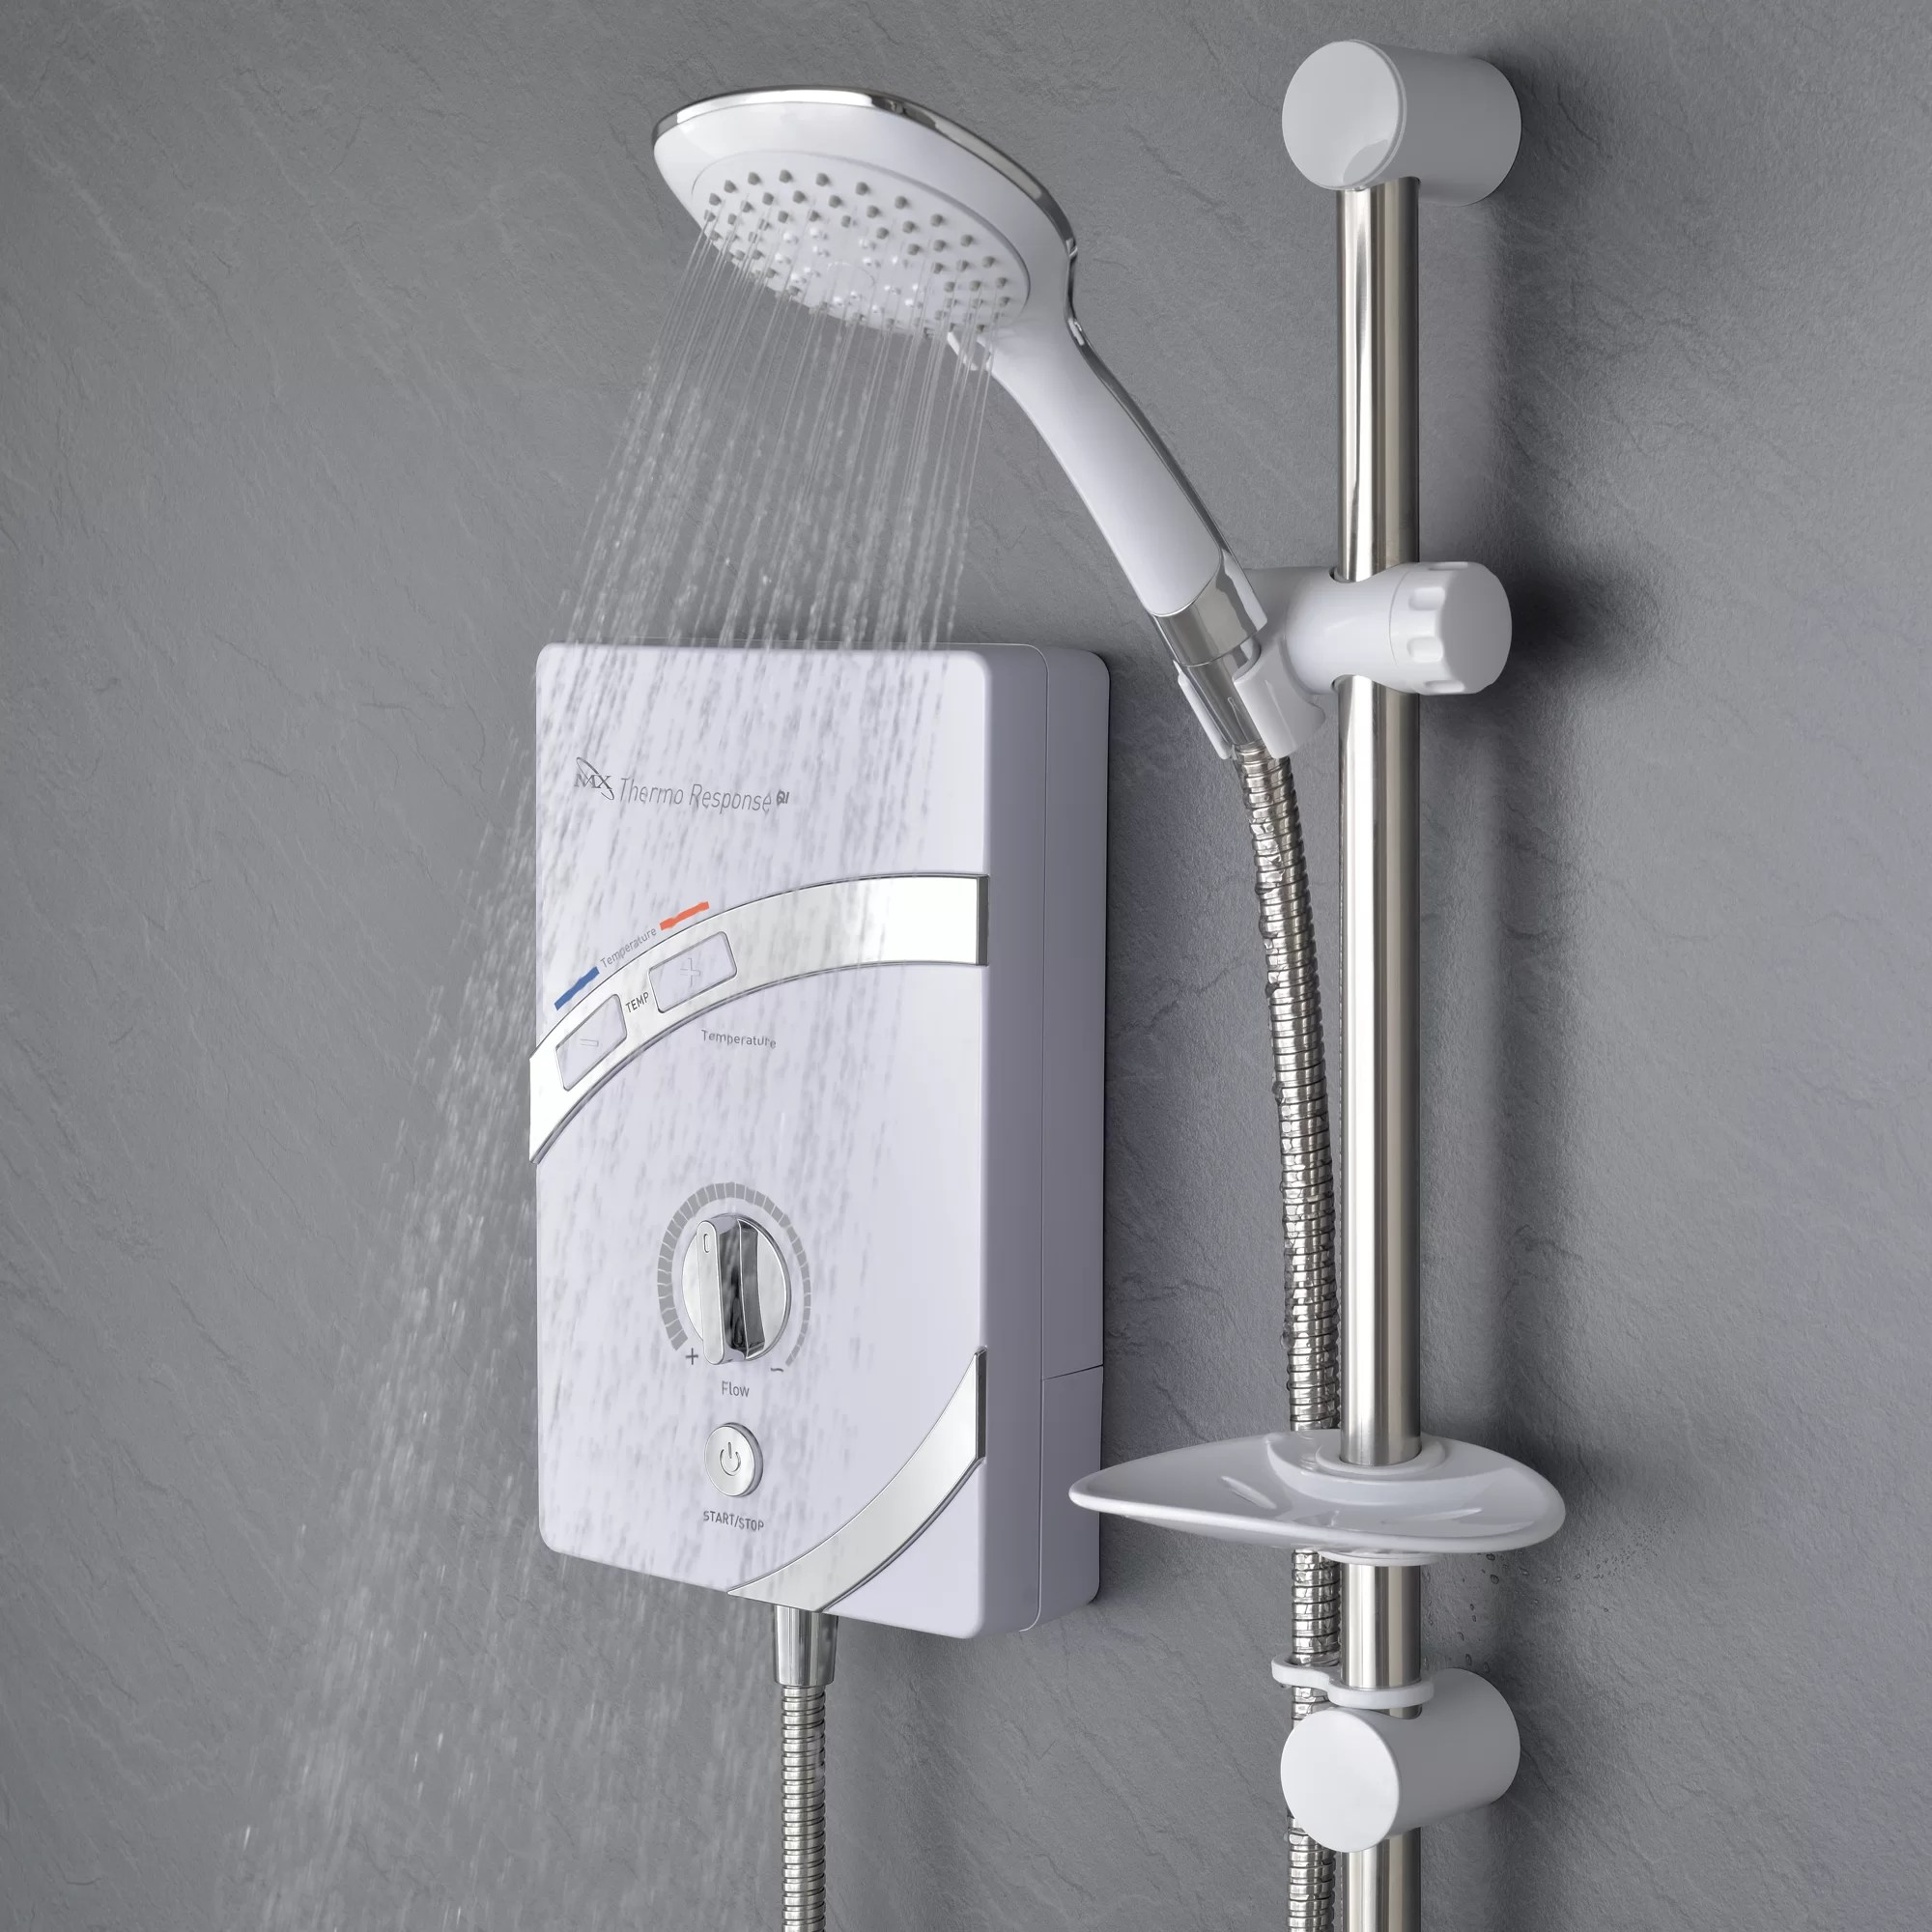 The Mx Group Response Qi Thermostatic Power Shower With Slide Bar Shower Head Wayfair Co Uk